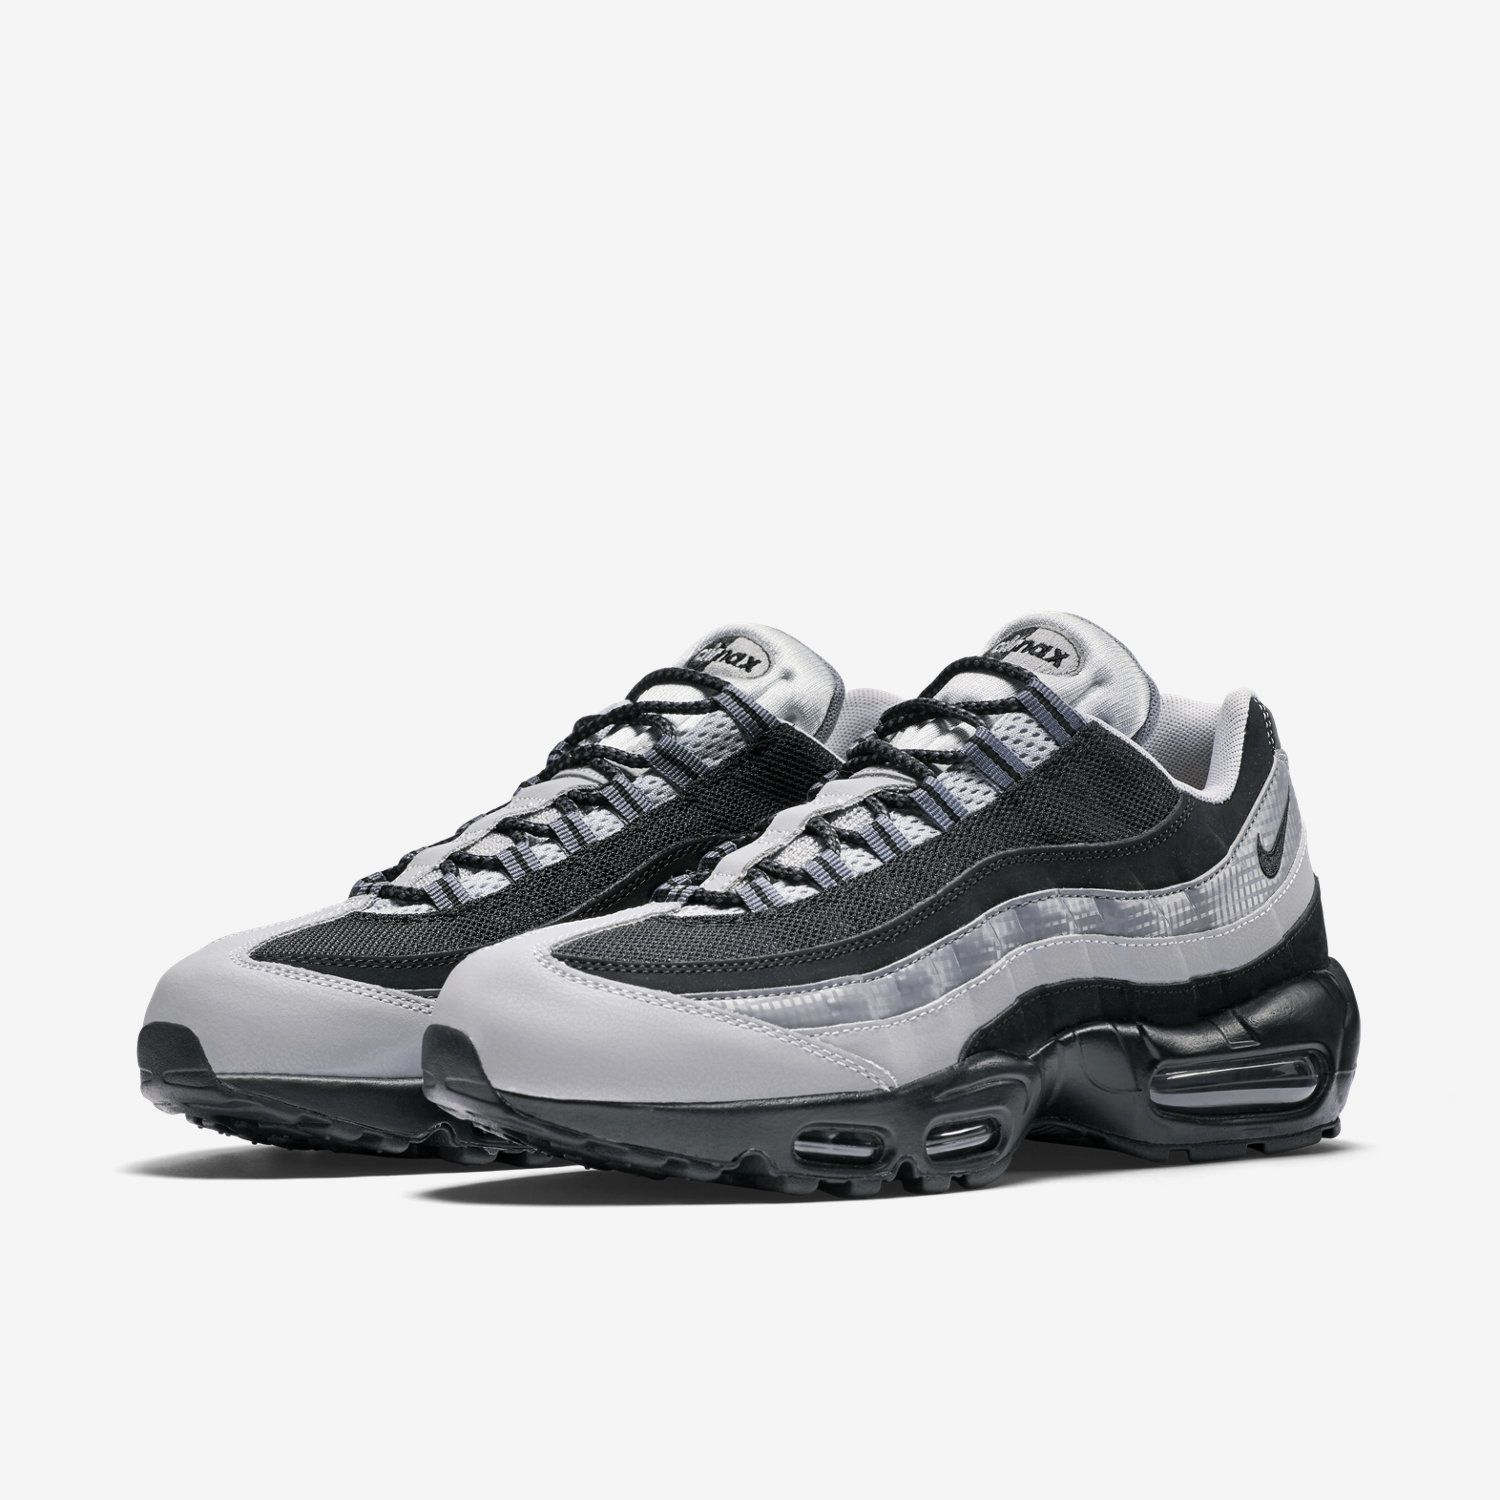 Women's Nike Wmns Air Max 2016 PRM Black Silver Sneakers : M50z1871